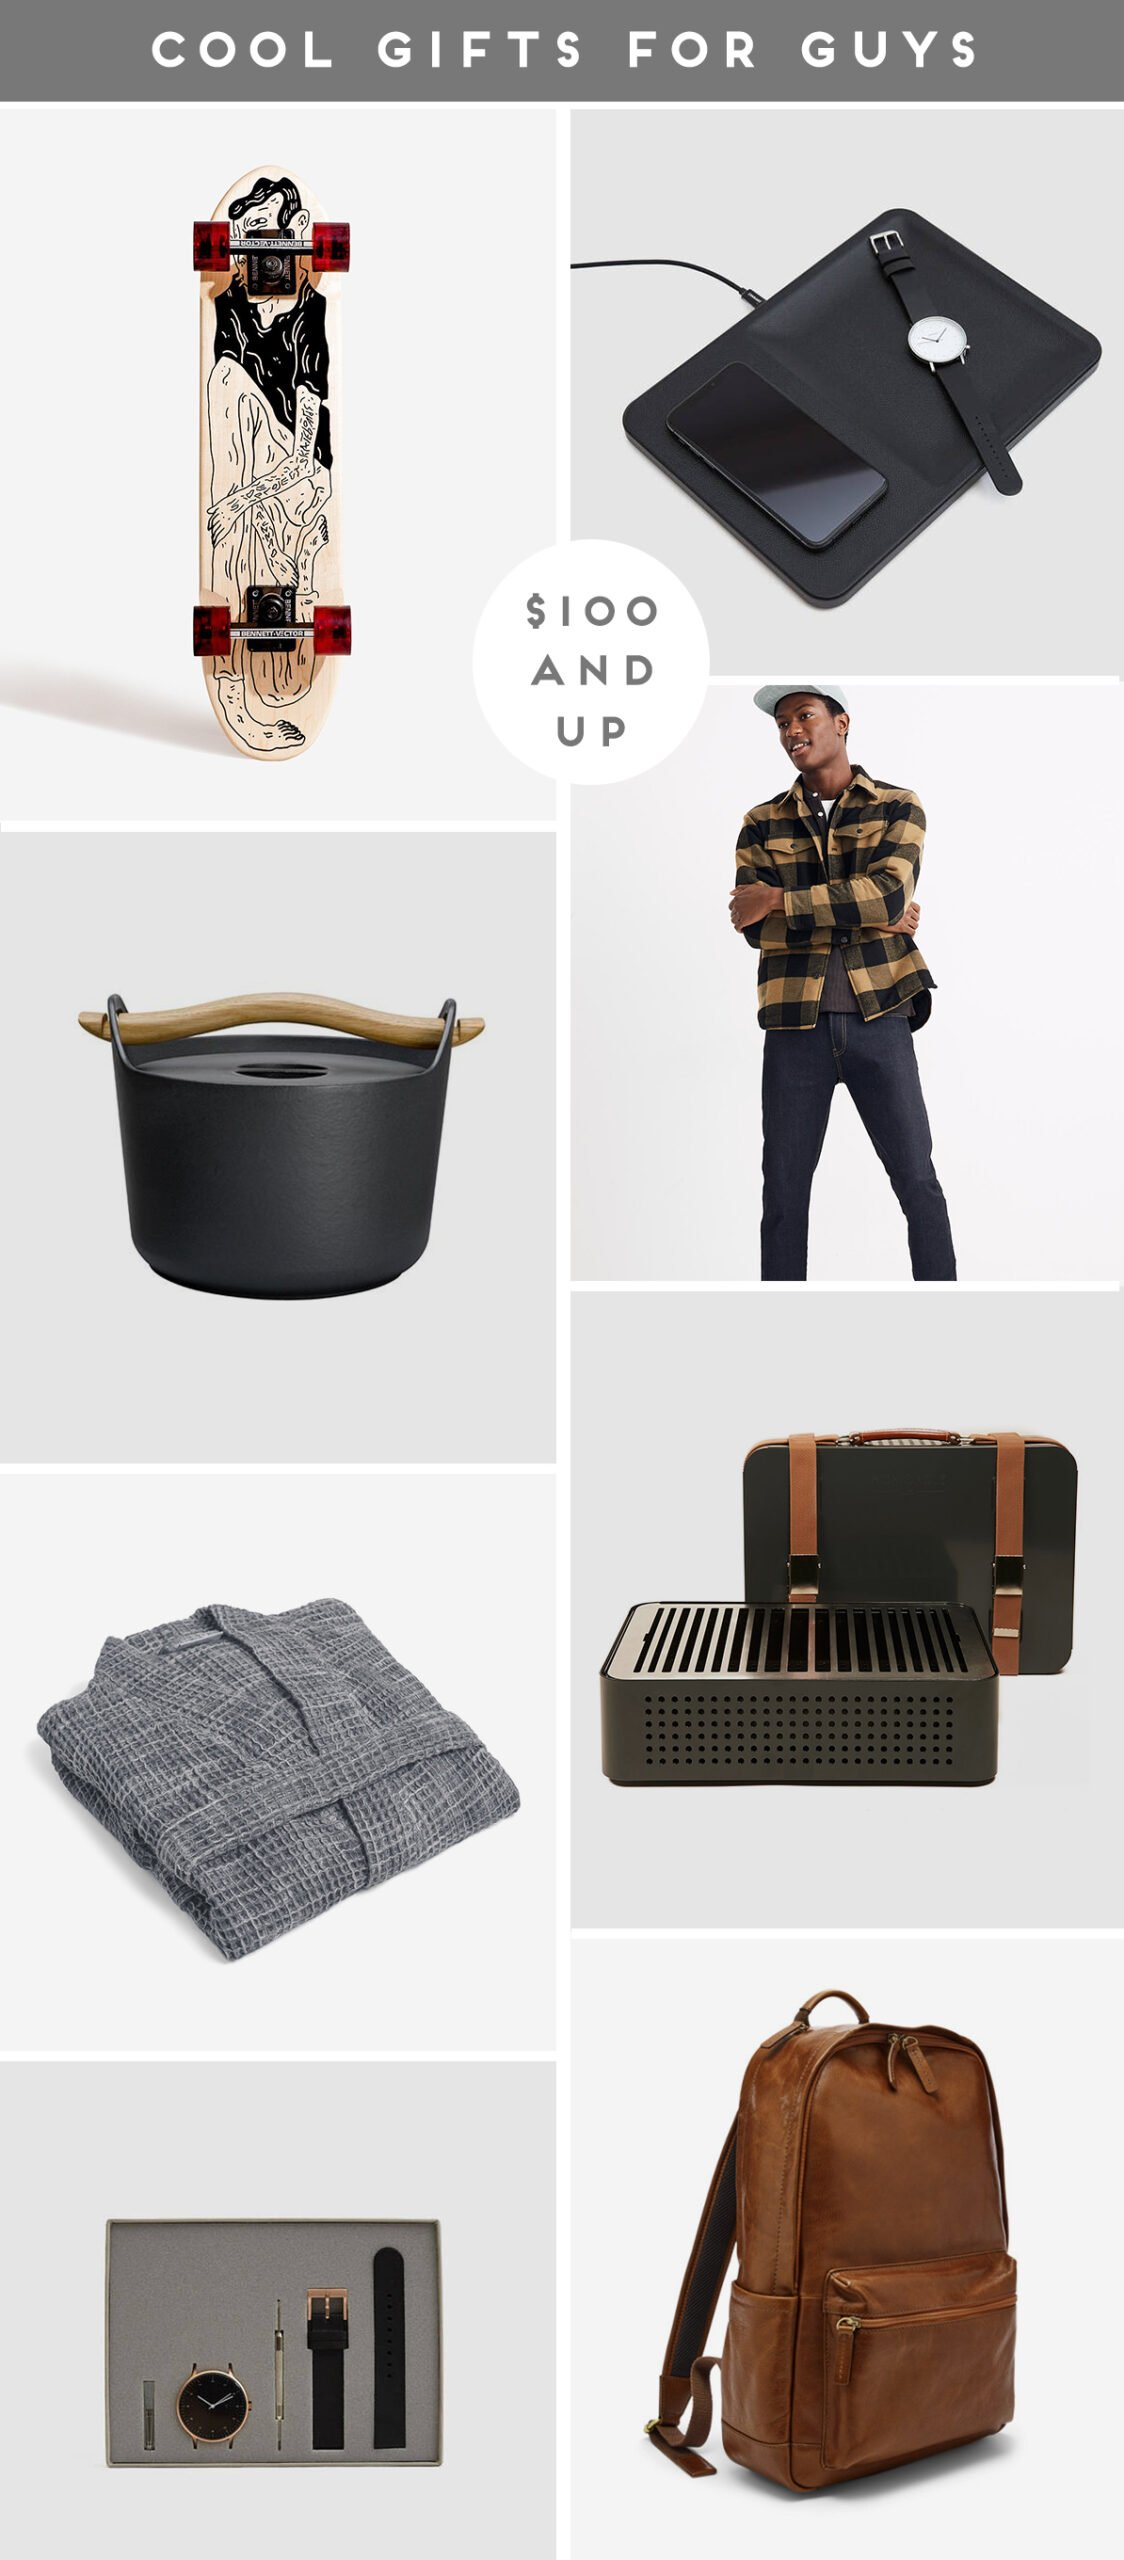 A roundup of cool gifts for guys ($100 and up)